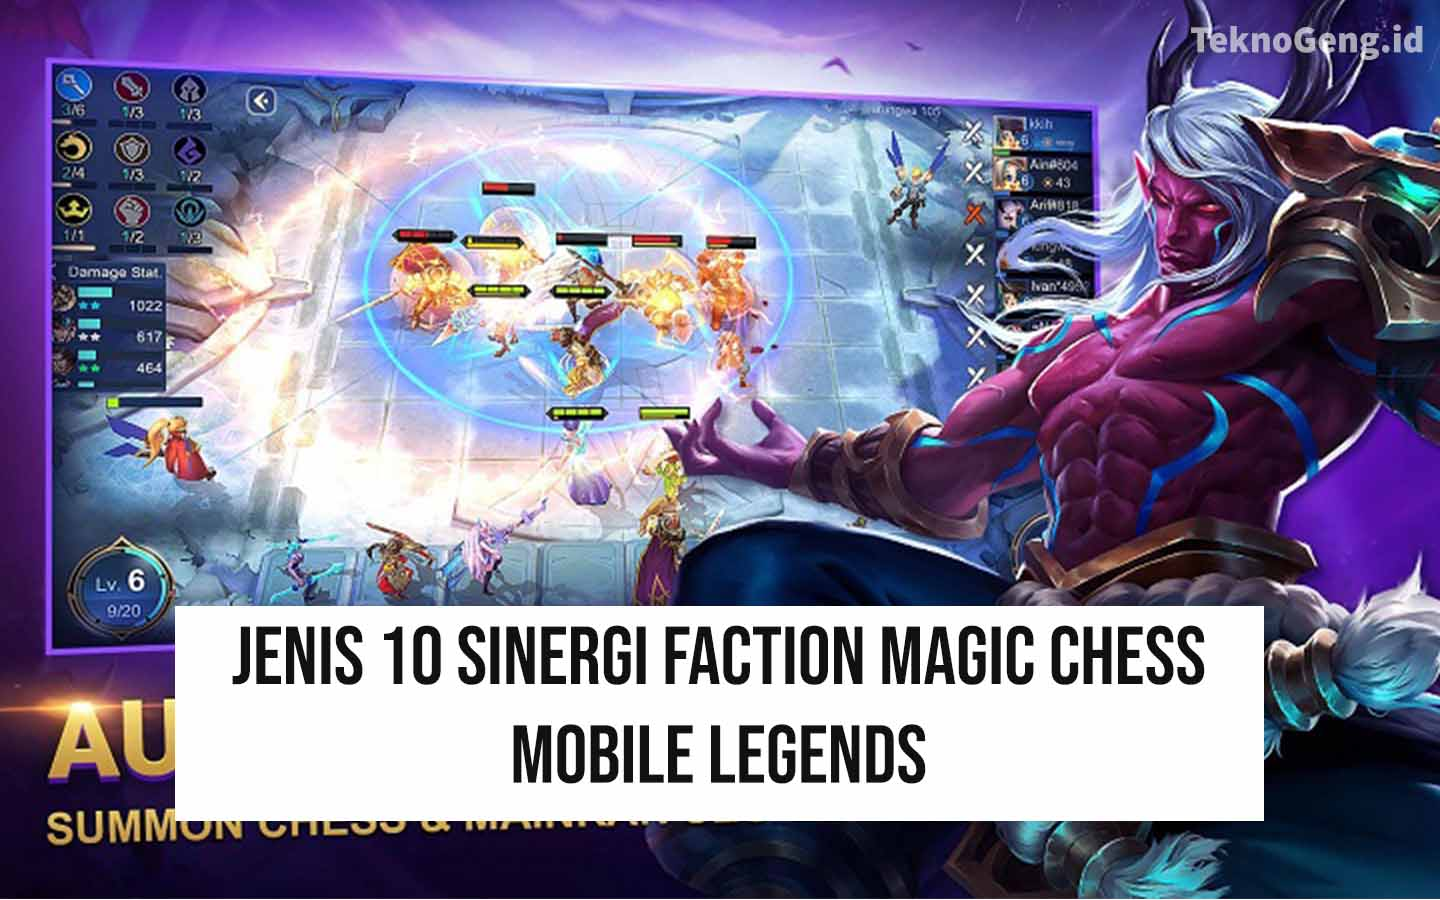 10 Sinergi Magic Chess Mobile Legends: Faction [UPDATE]